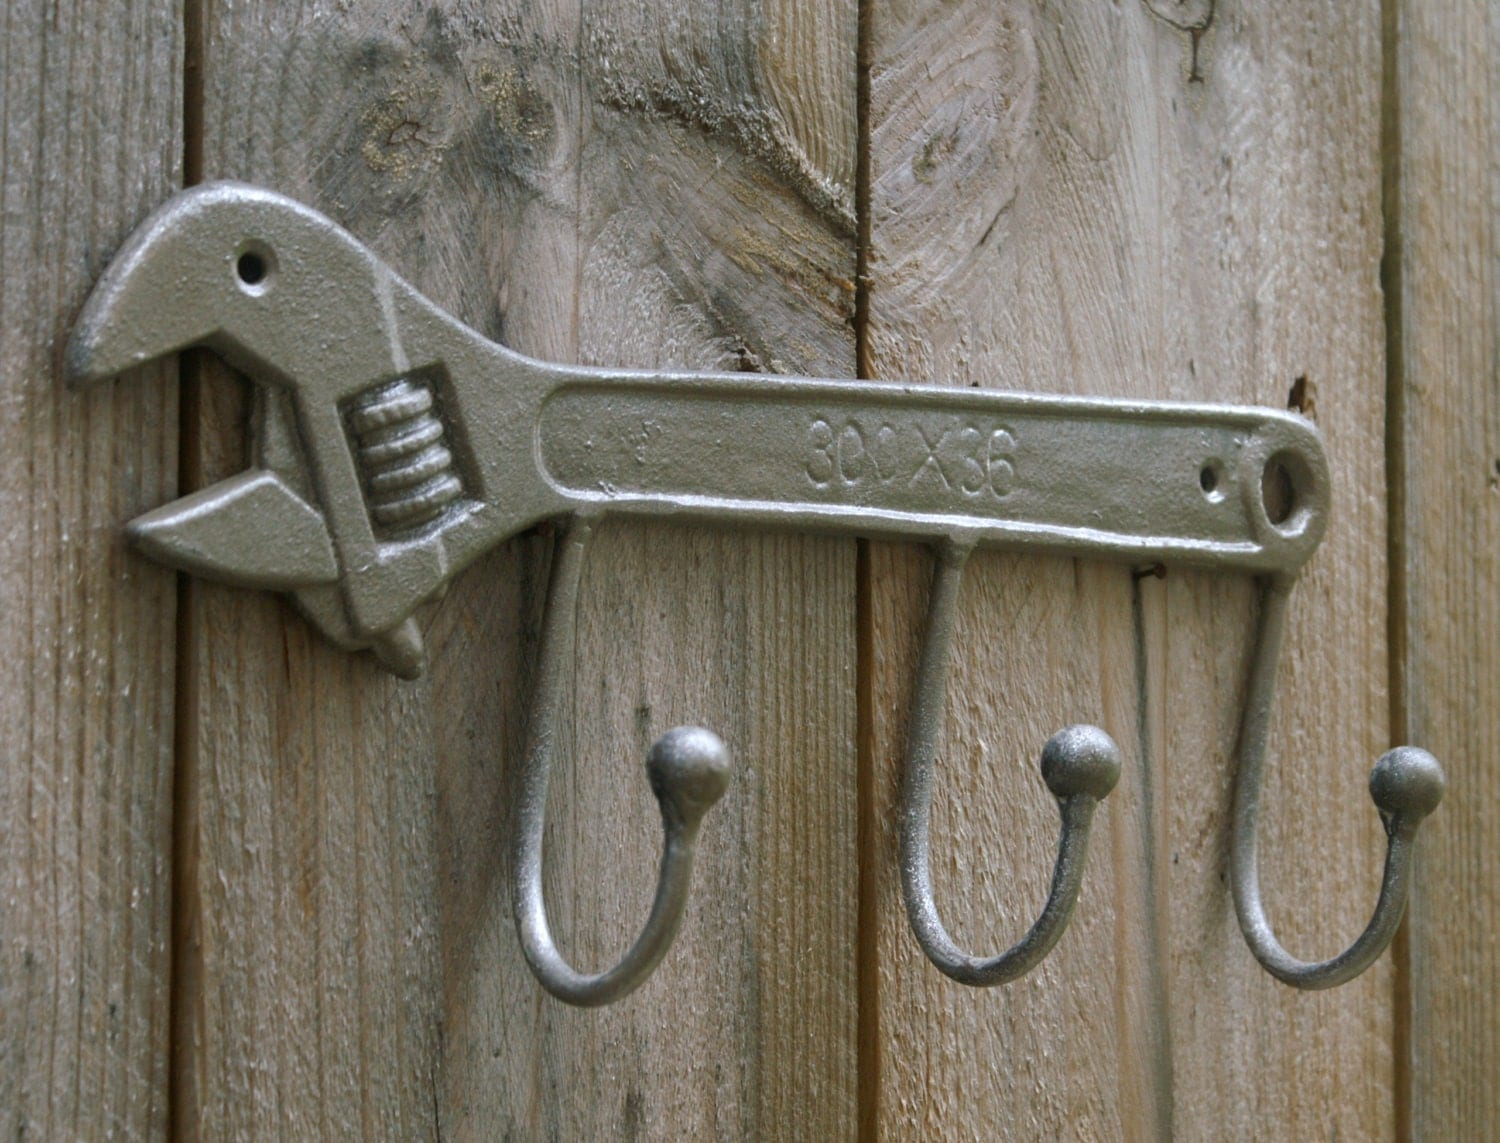 Key Shaped Key Rack Wrench Shaped Metal Wall Hook Hanging Cast Iron Key Rack Tool